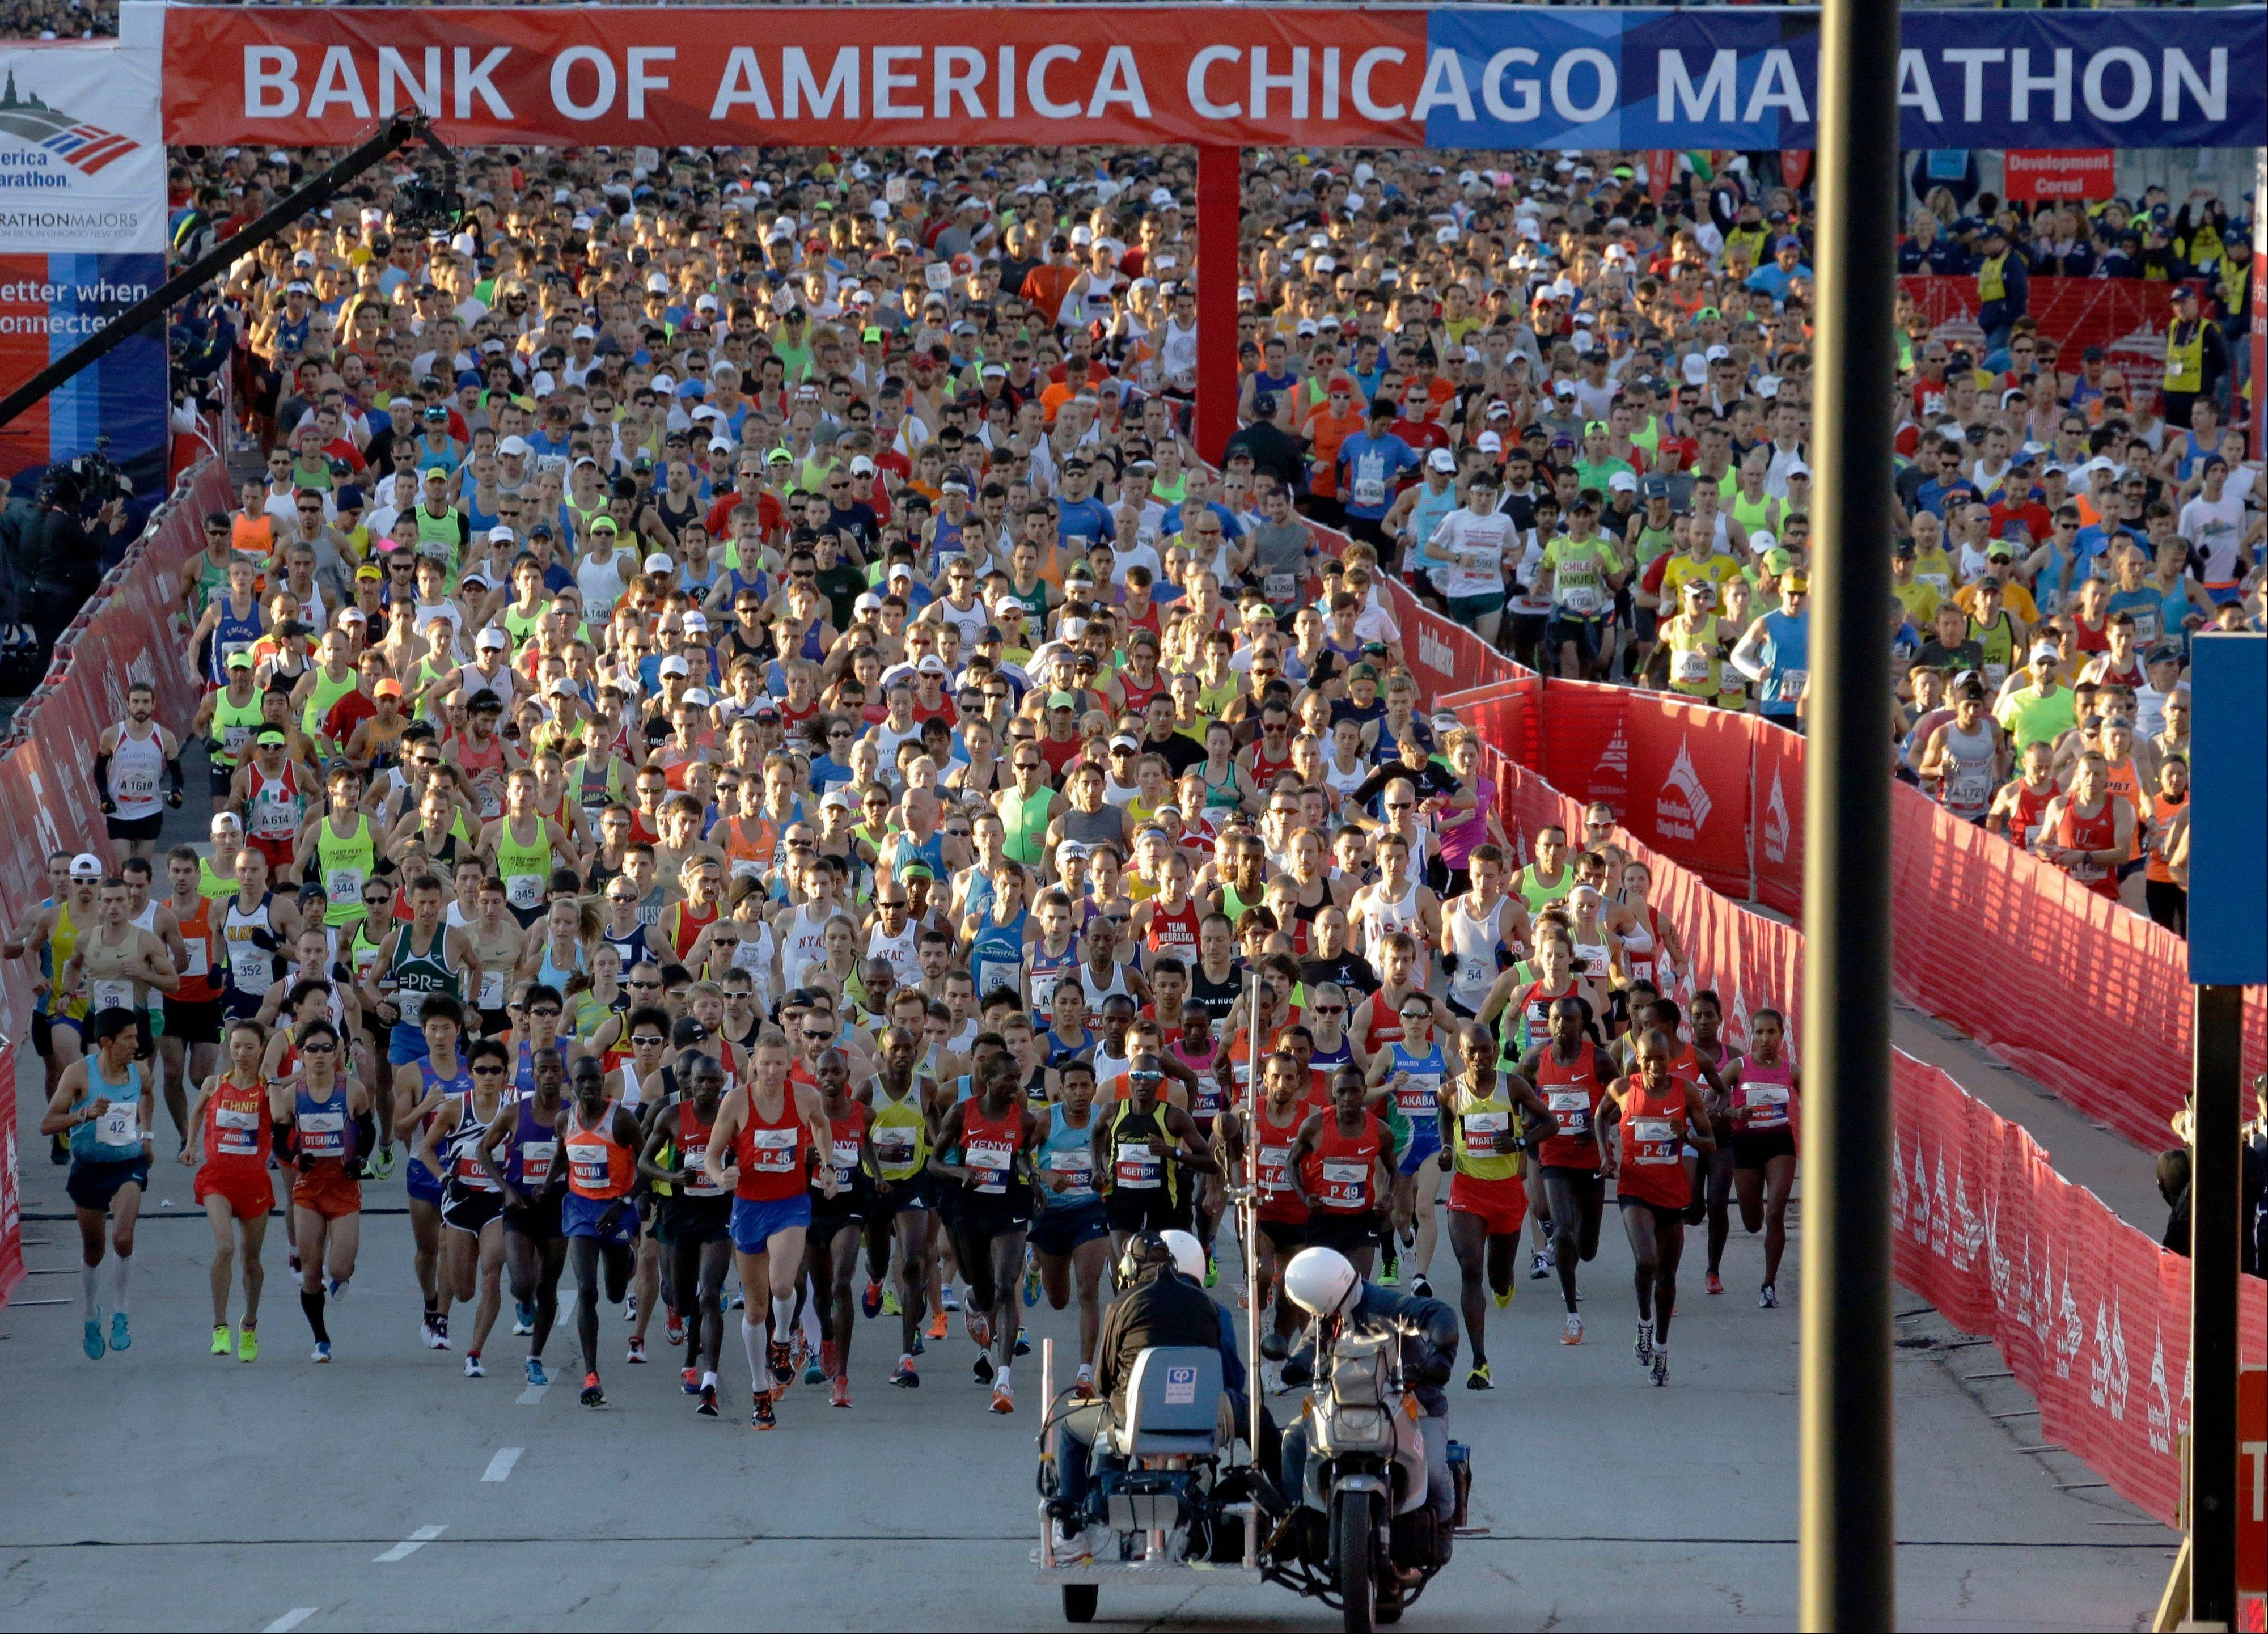 Runners start the Chicago Marathon in Chicago, Sunday, Oct. 13, 2013, nearly six months after the Boston Marathon bombings, with more police officers lining race routes and spectator areas.